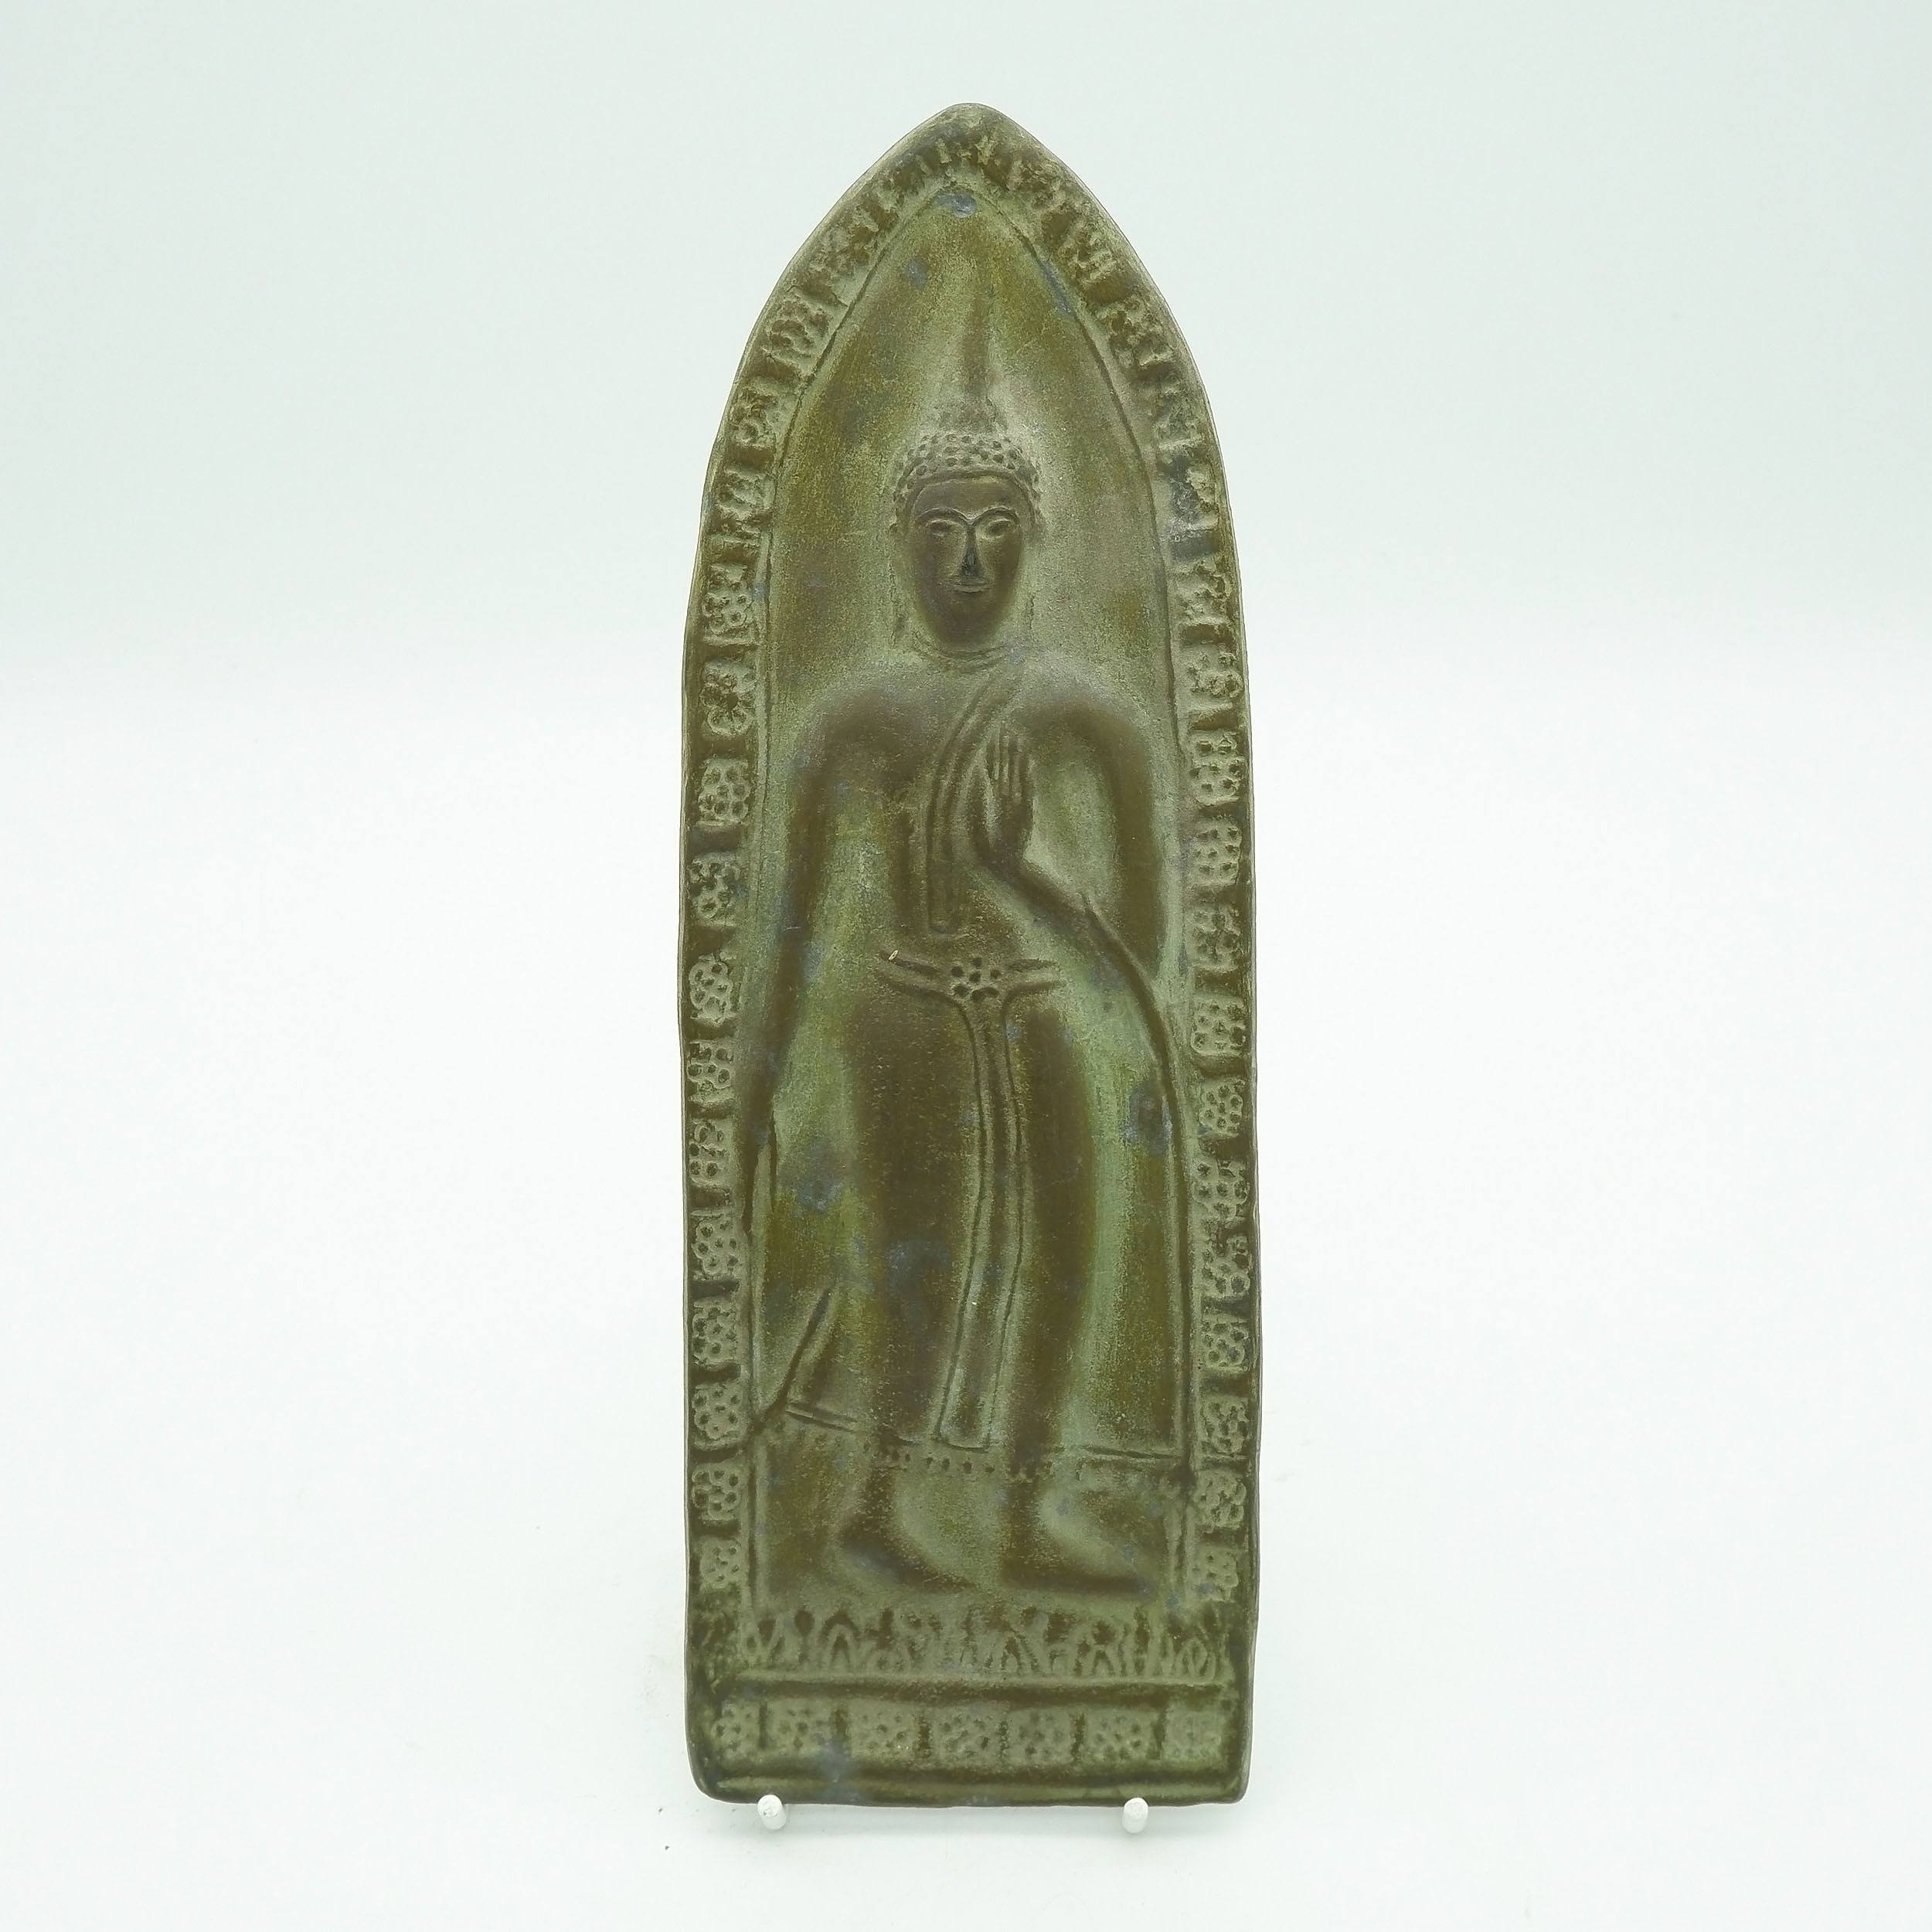 'Thai Sukhothai Style Lead Votive Tablet, Laos Late 20th Century'